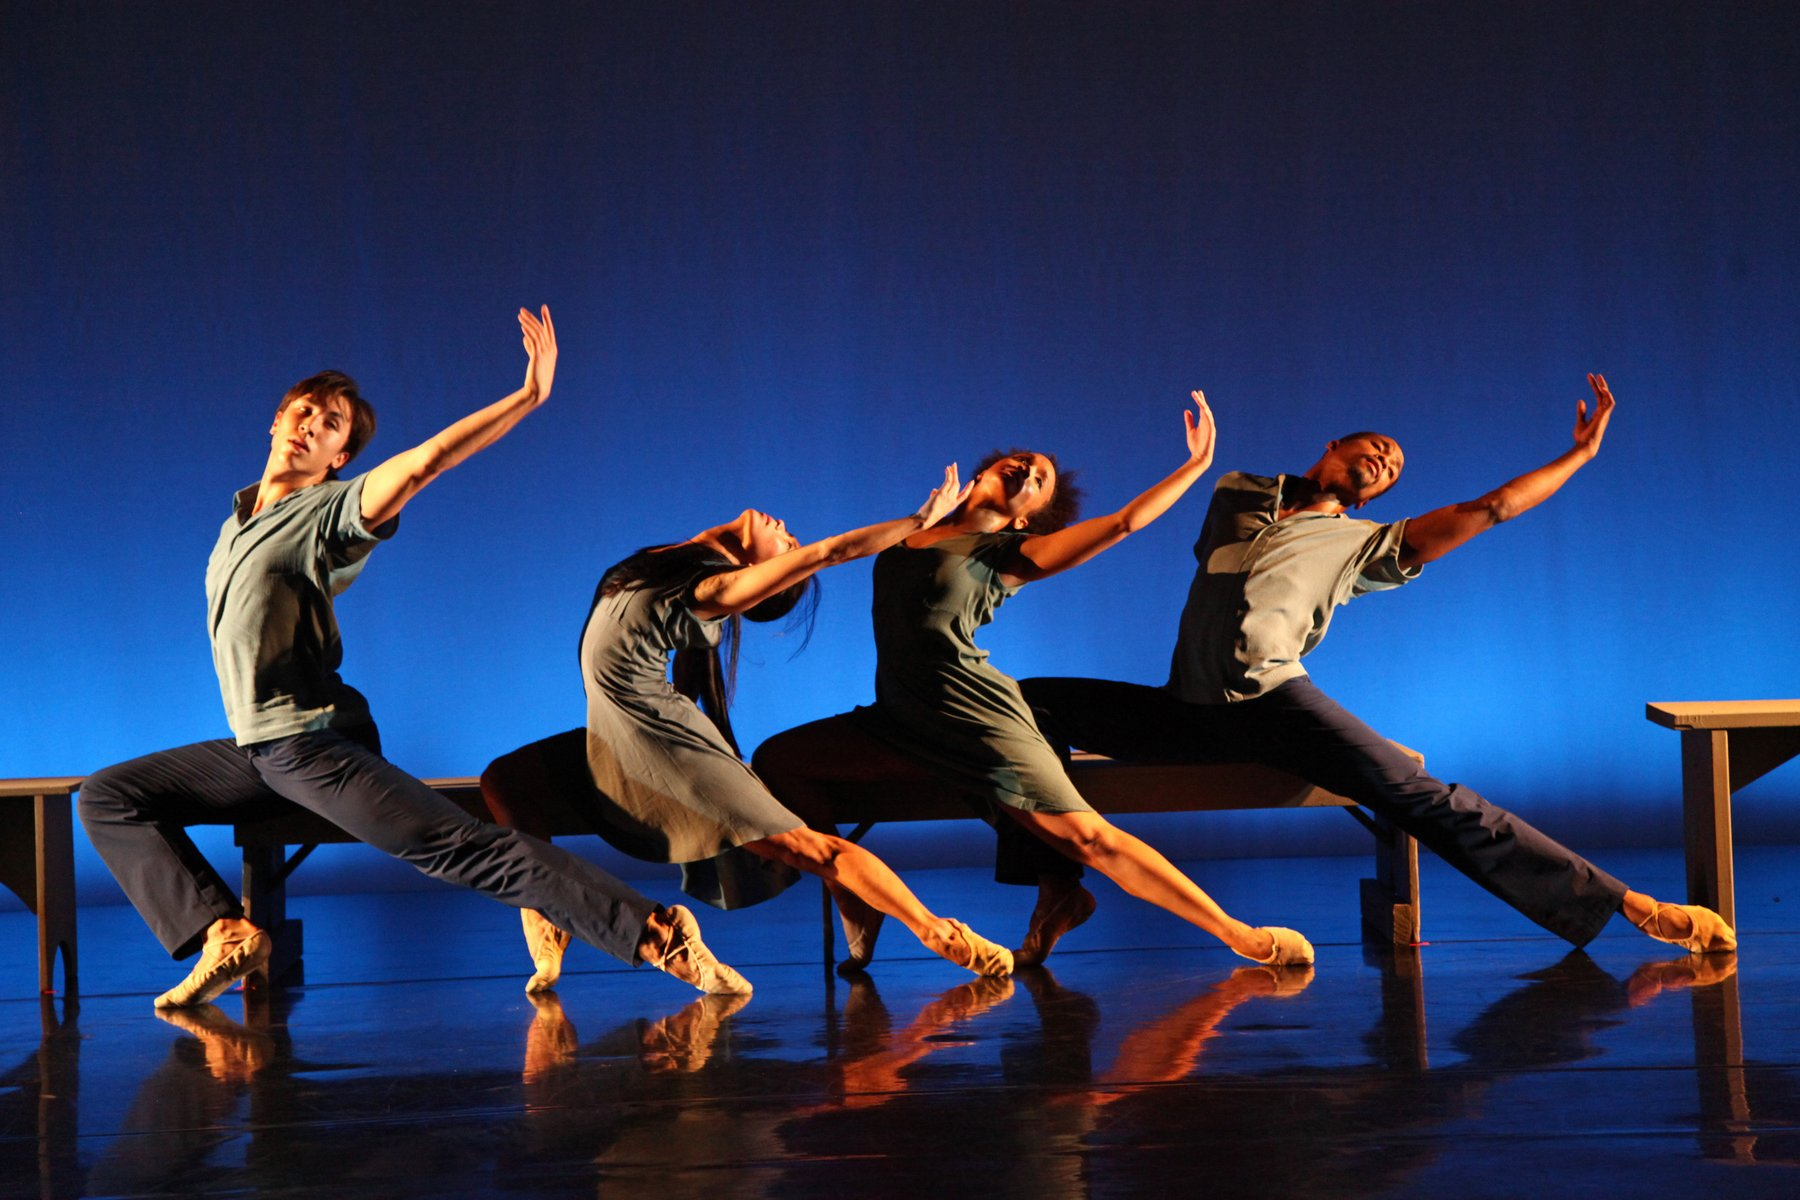 LtoR: Alex Ratcliffe-Lee, Sun Mi Cho, Anna Noble, Daniel Moore (Photo by Bill Hebert)